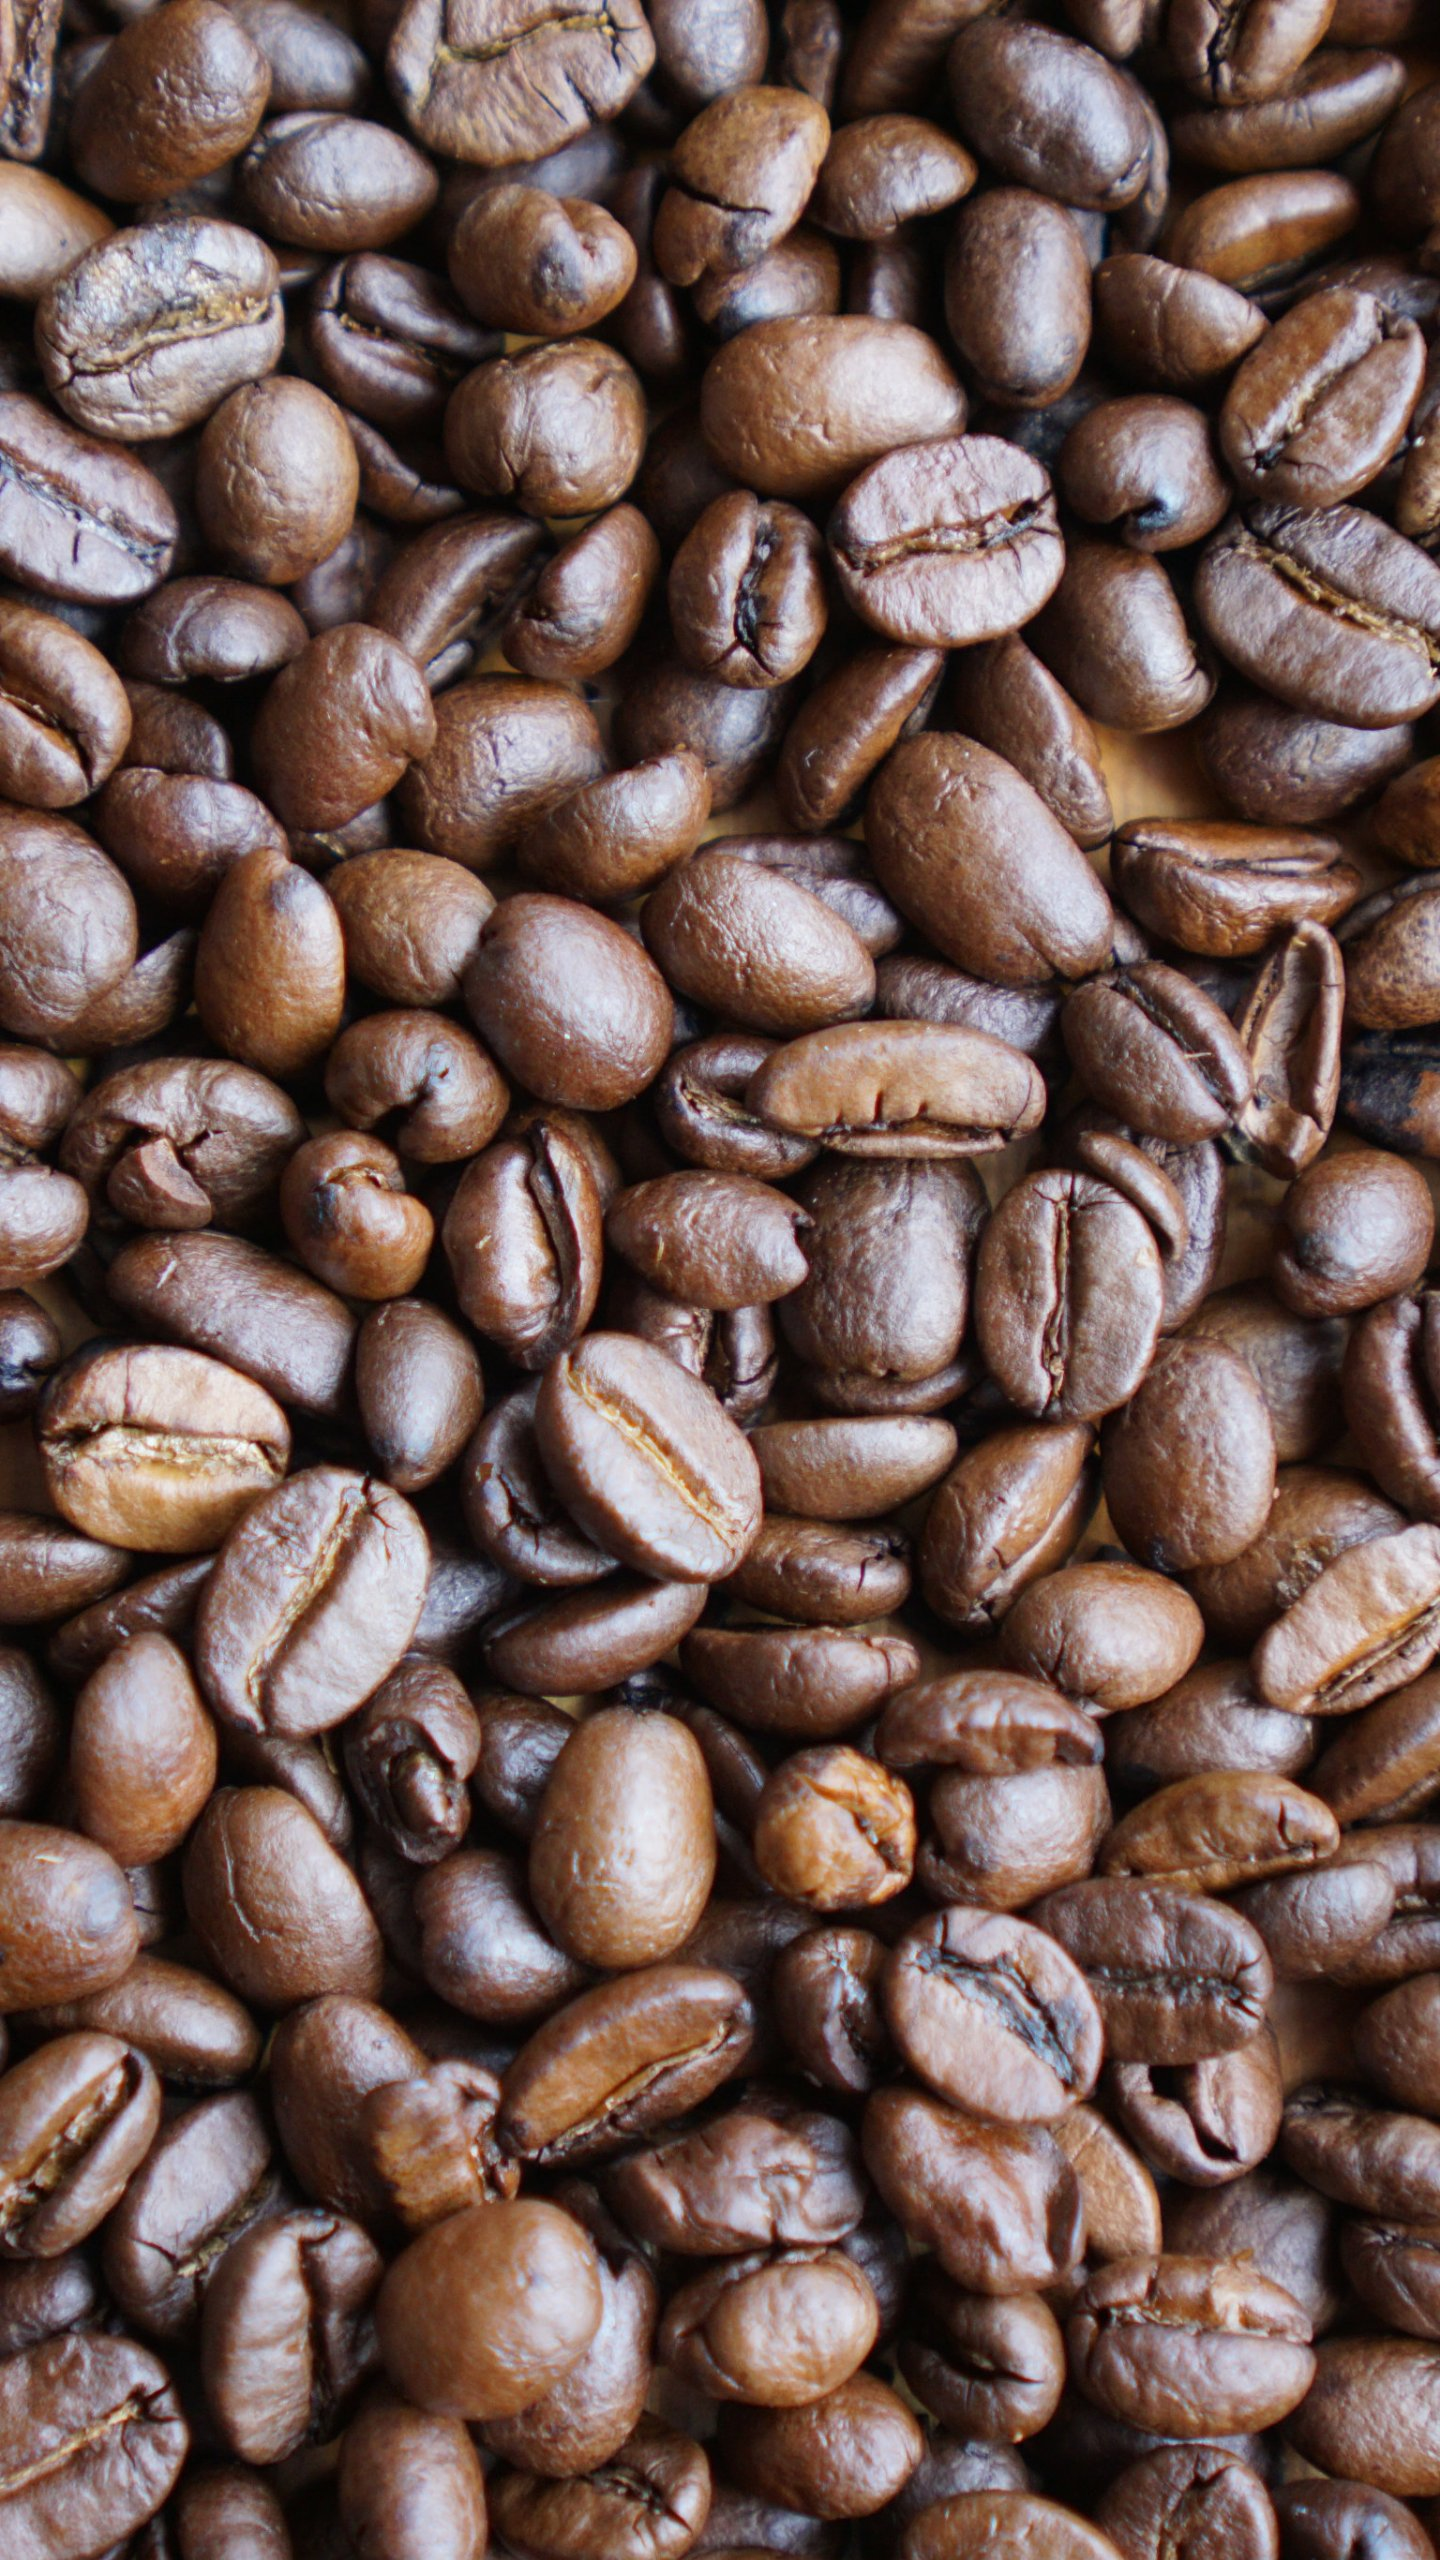 Coffee Beans Wallpaper Iphone Android Desktop Backgrounds